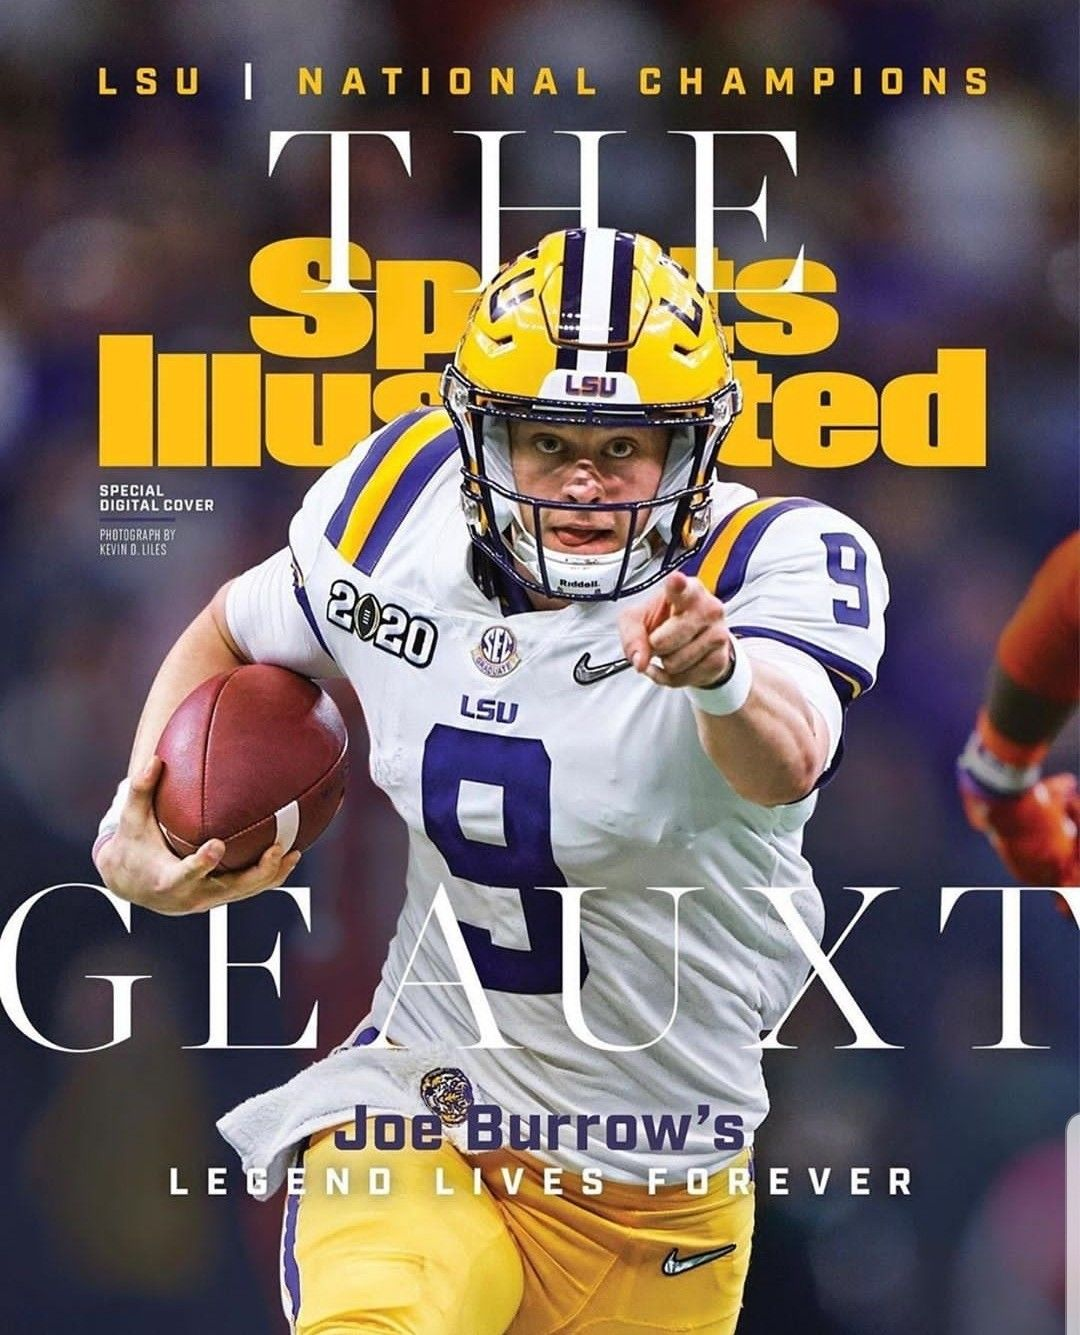 Pin by Kenny Hall on Sports Illustrated Covers in 2020